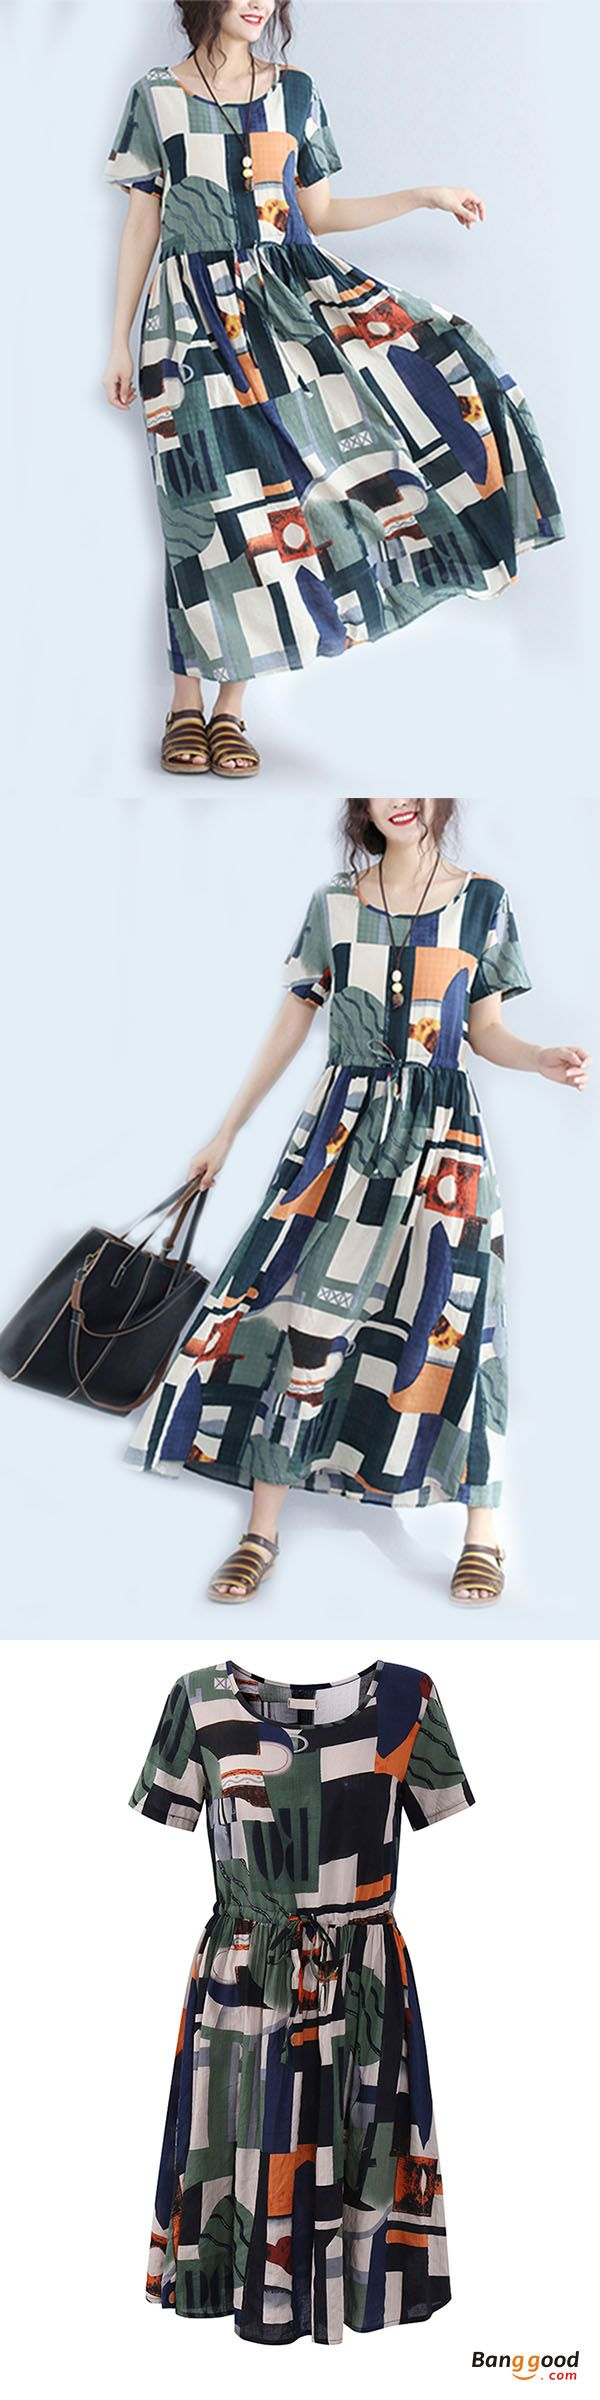 US$25.99 + Free shipping. Casual Women Color Block Drawstring Waist Short Sleeve Maxi Dresses. Material: Cotton. Size:S,M,L,XL. Buy now!